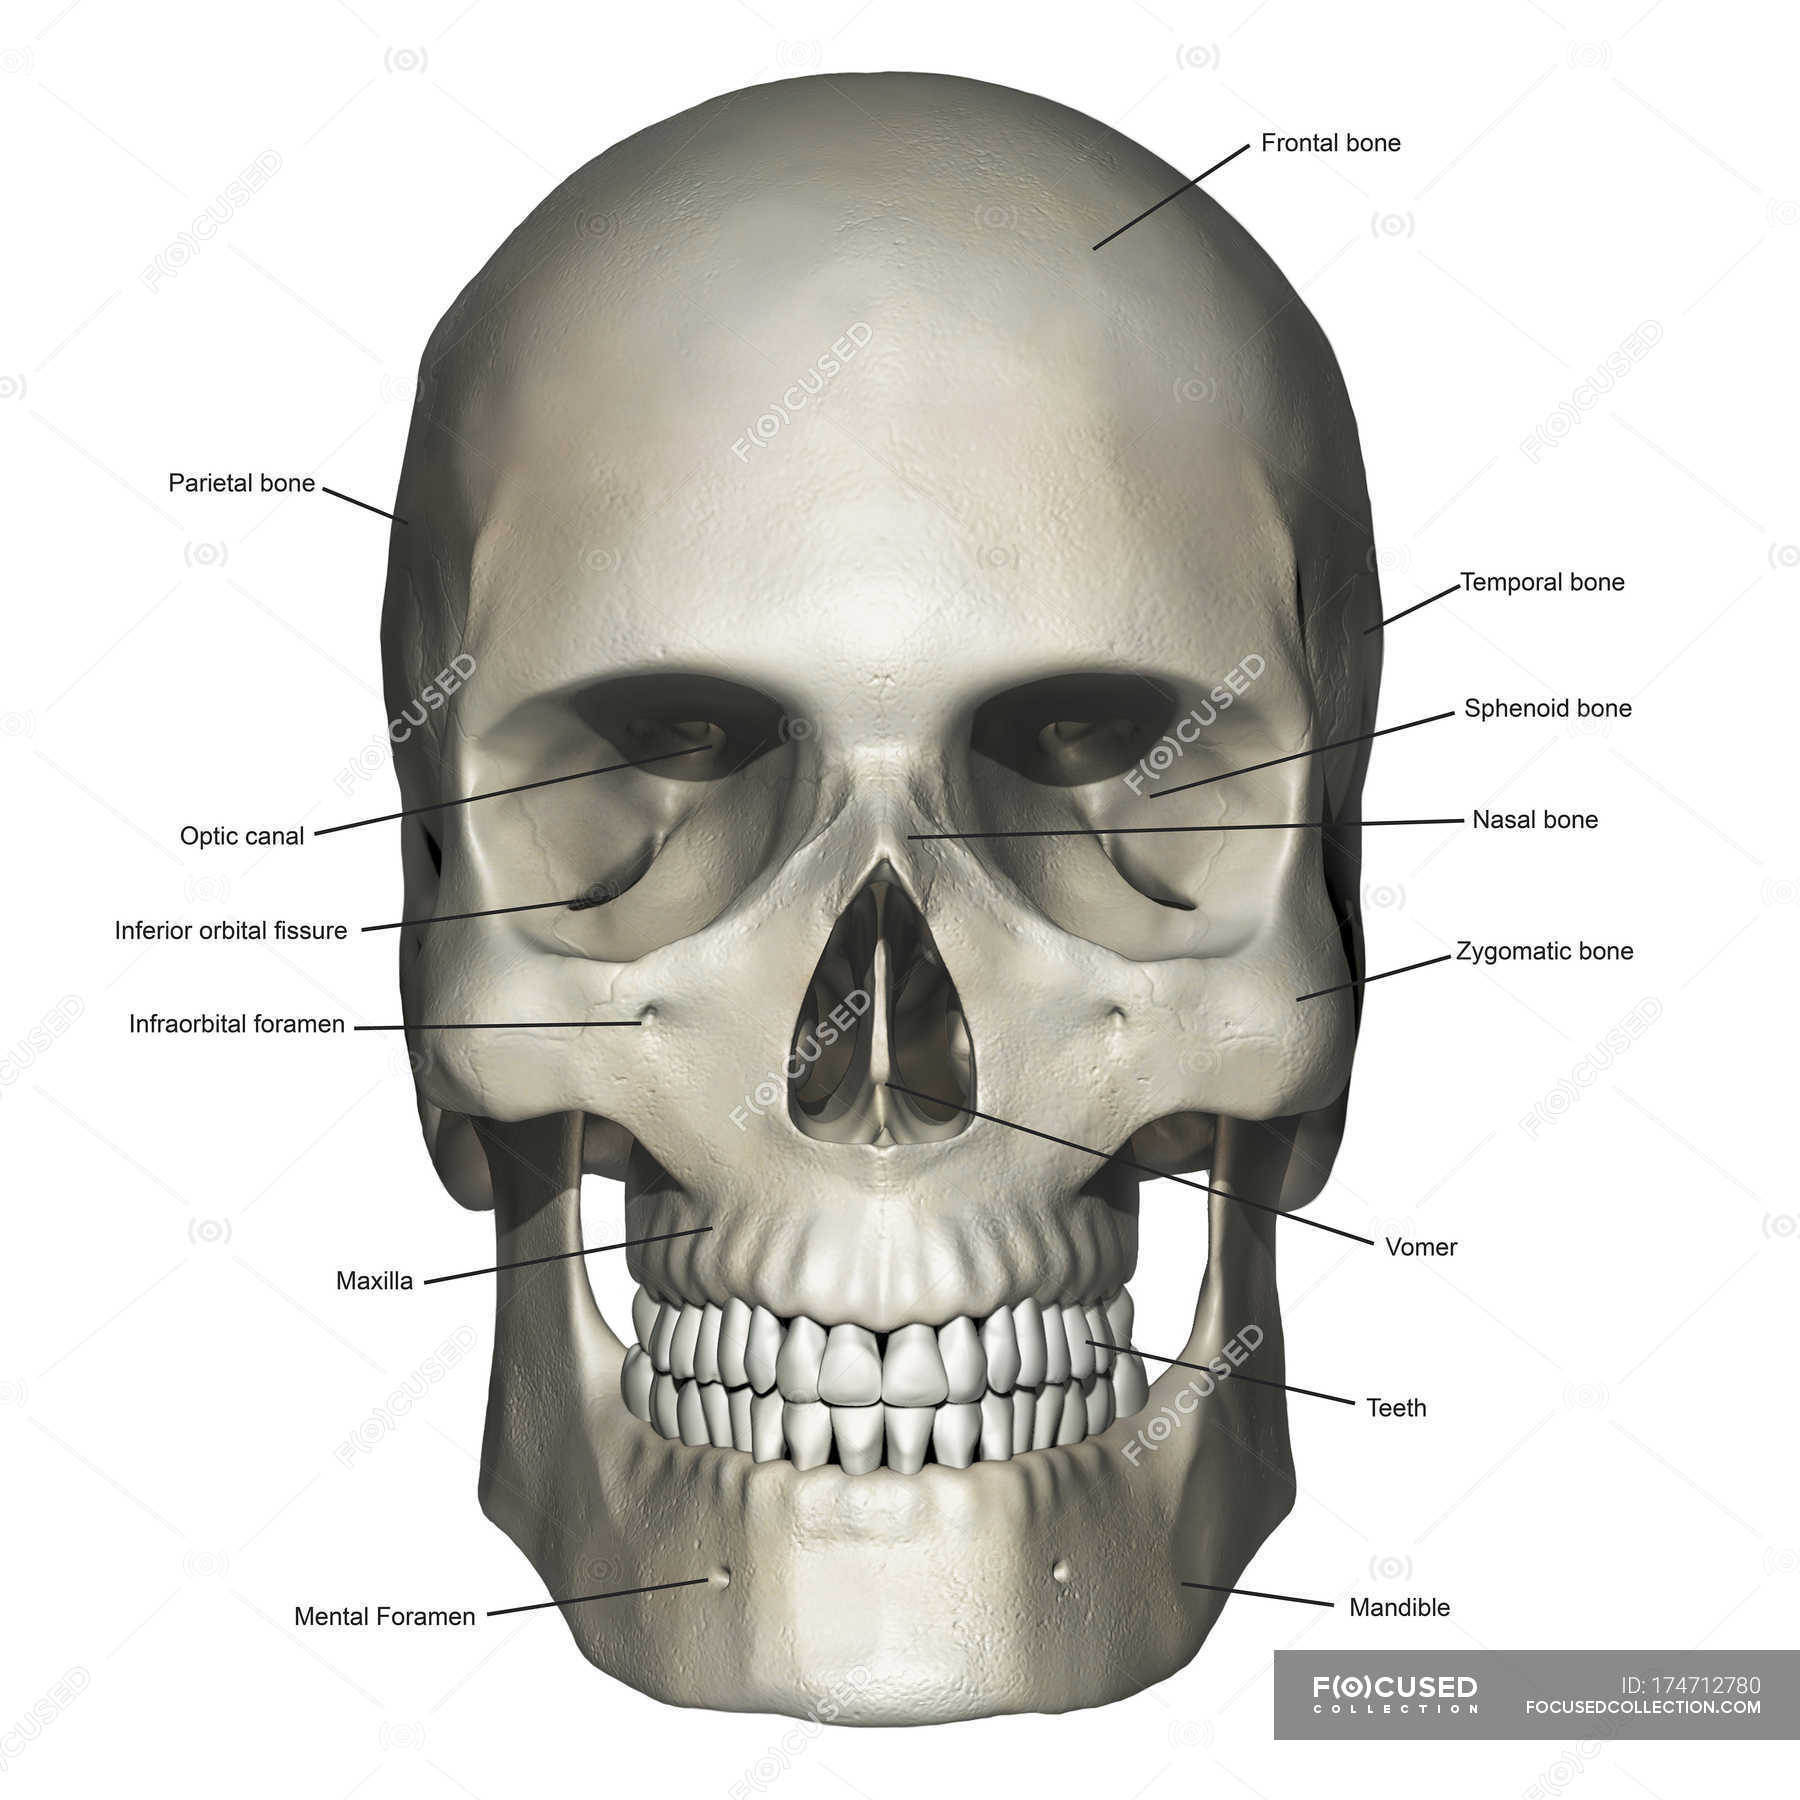 Anterior View Of Human Skull Anatomy With Annotations